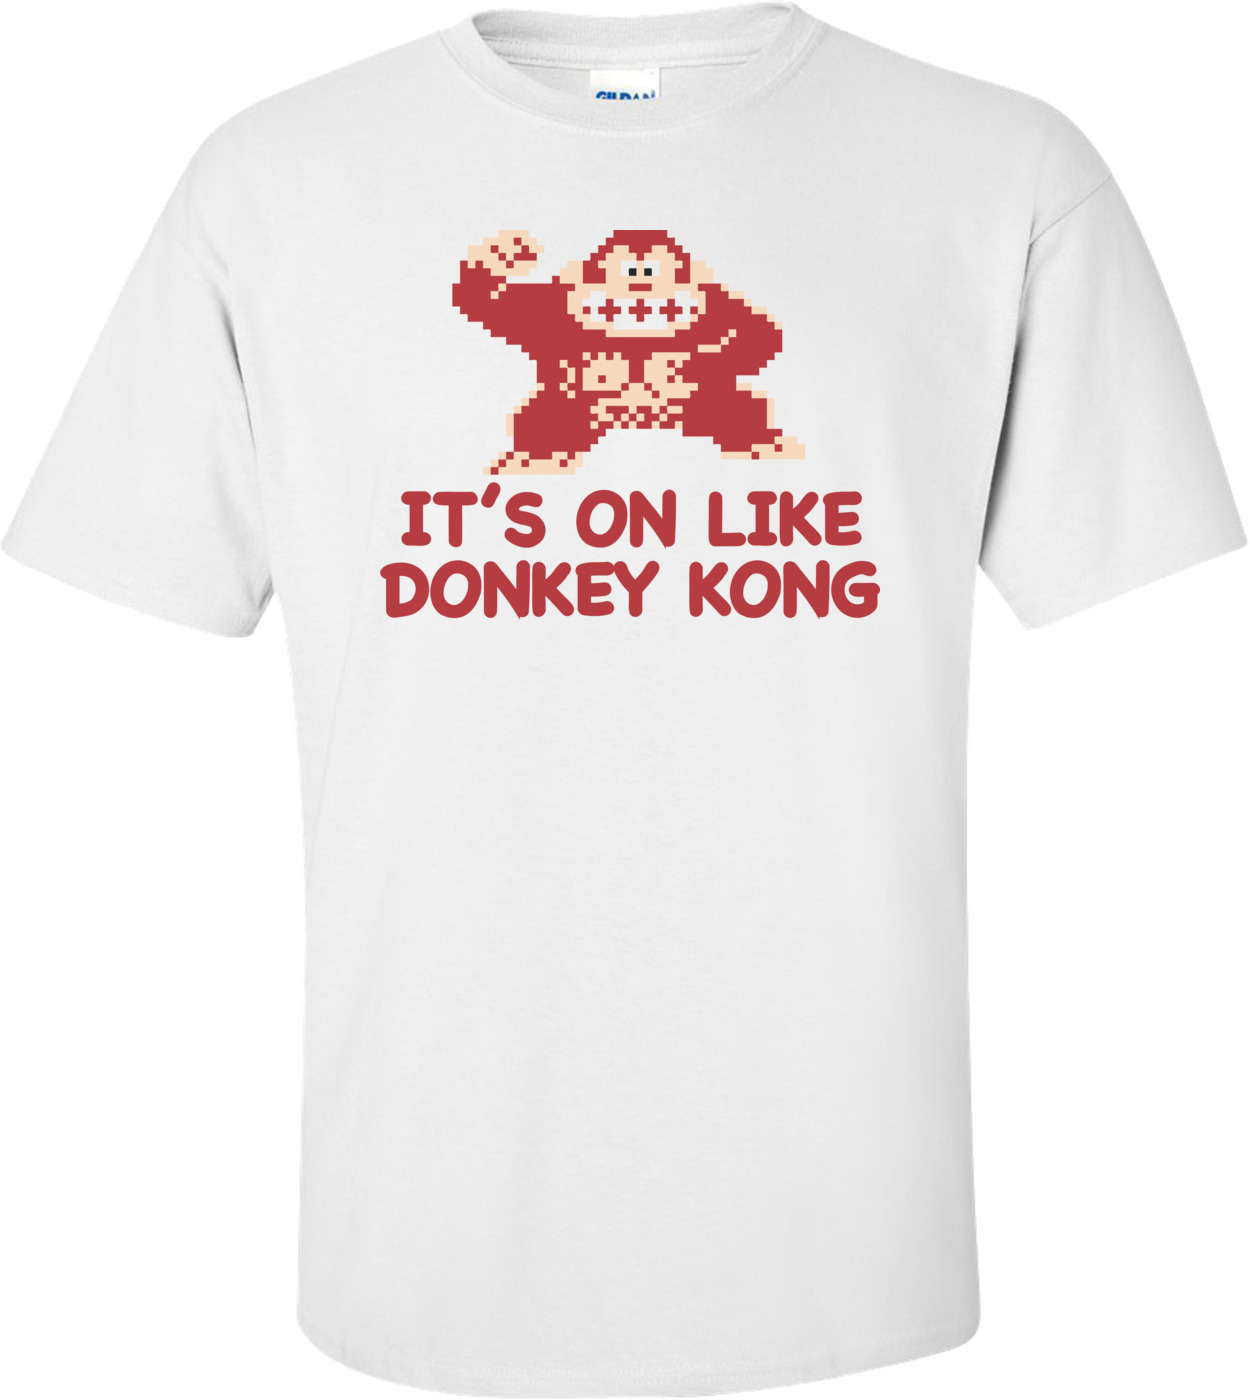 091ccce34 It's On Like Donkey Kong T-shirt